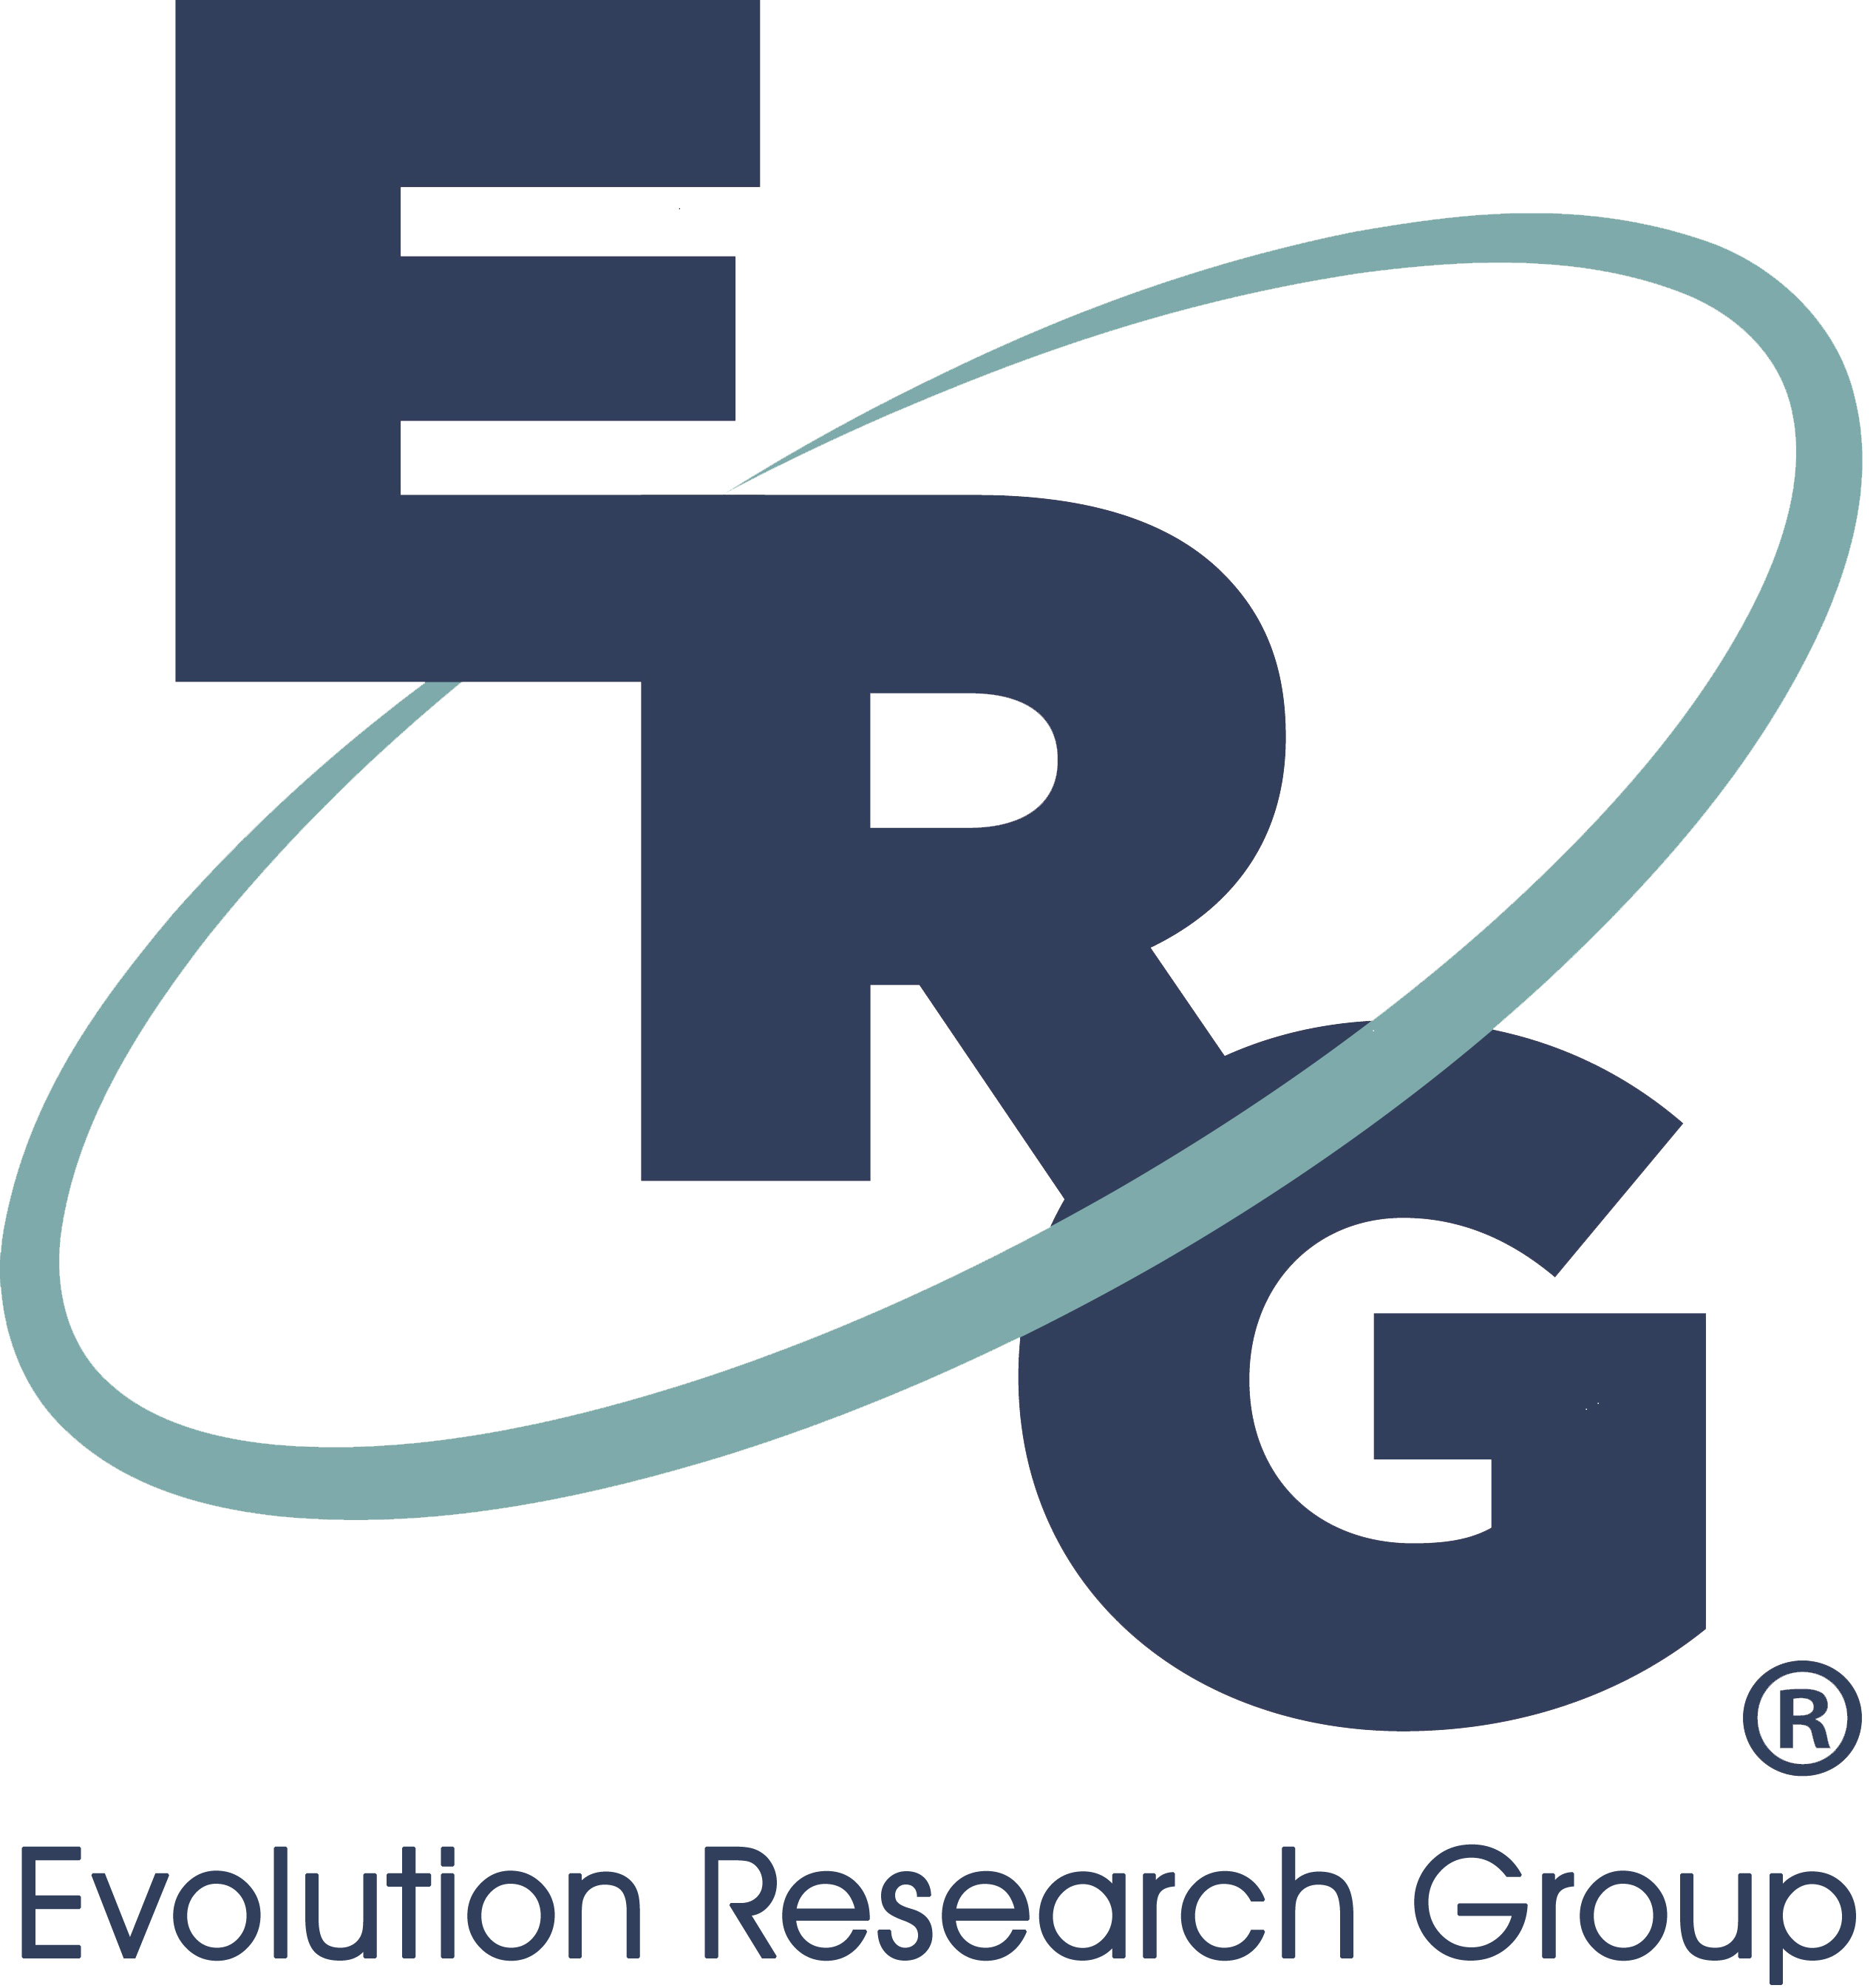 Evolution Research Group Acquires Endeavor Clinical Trials